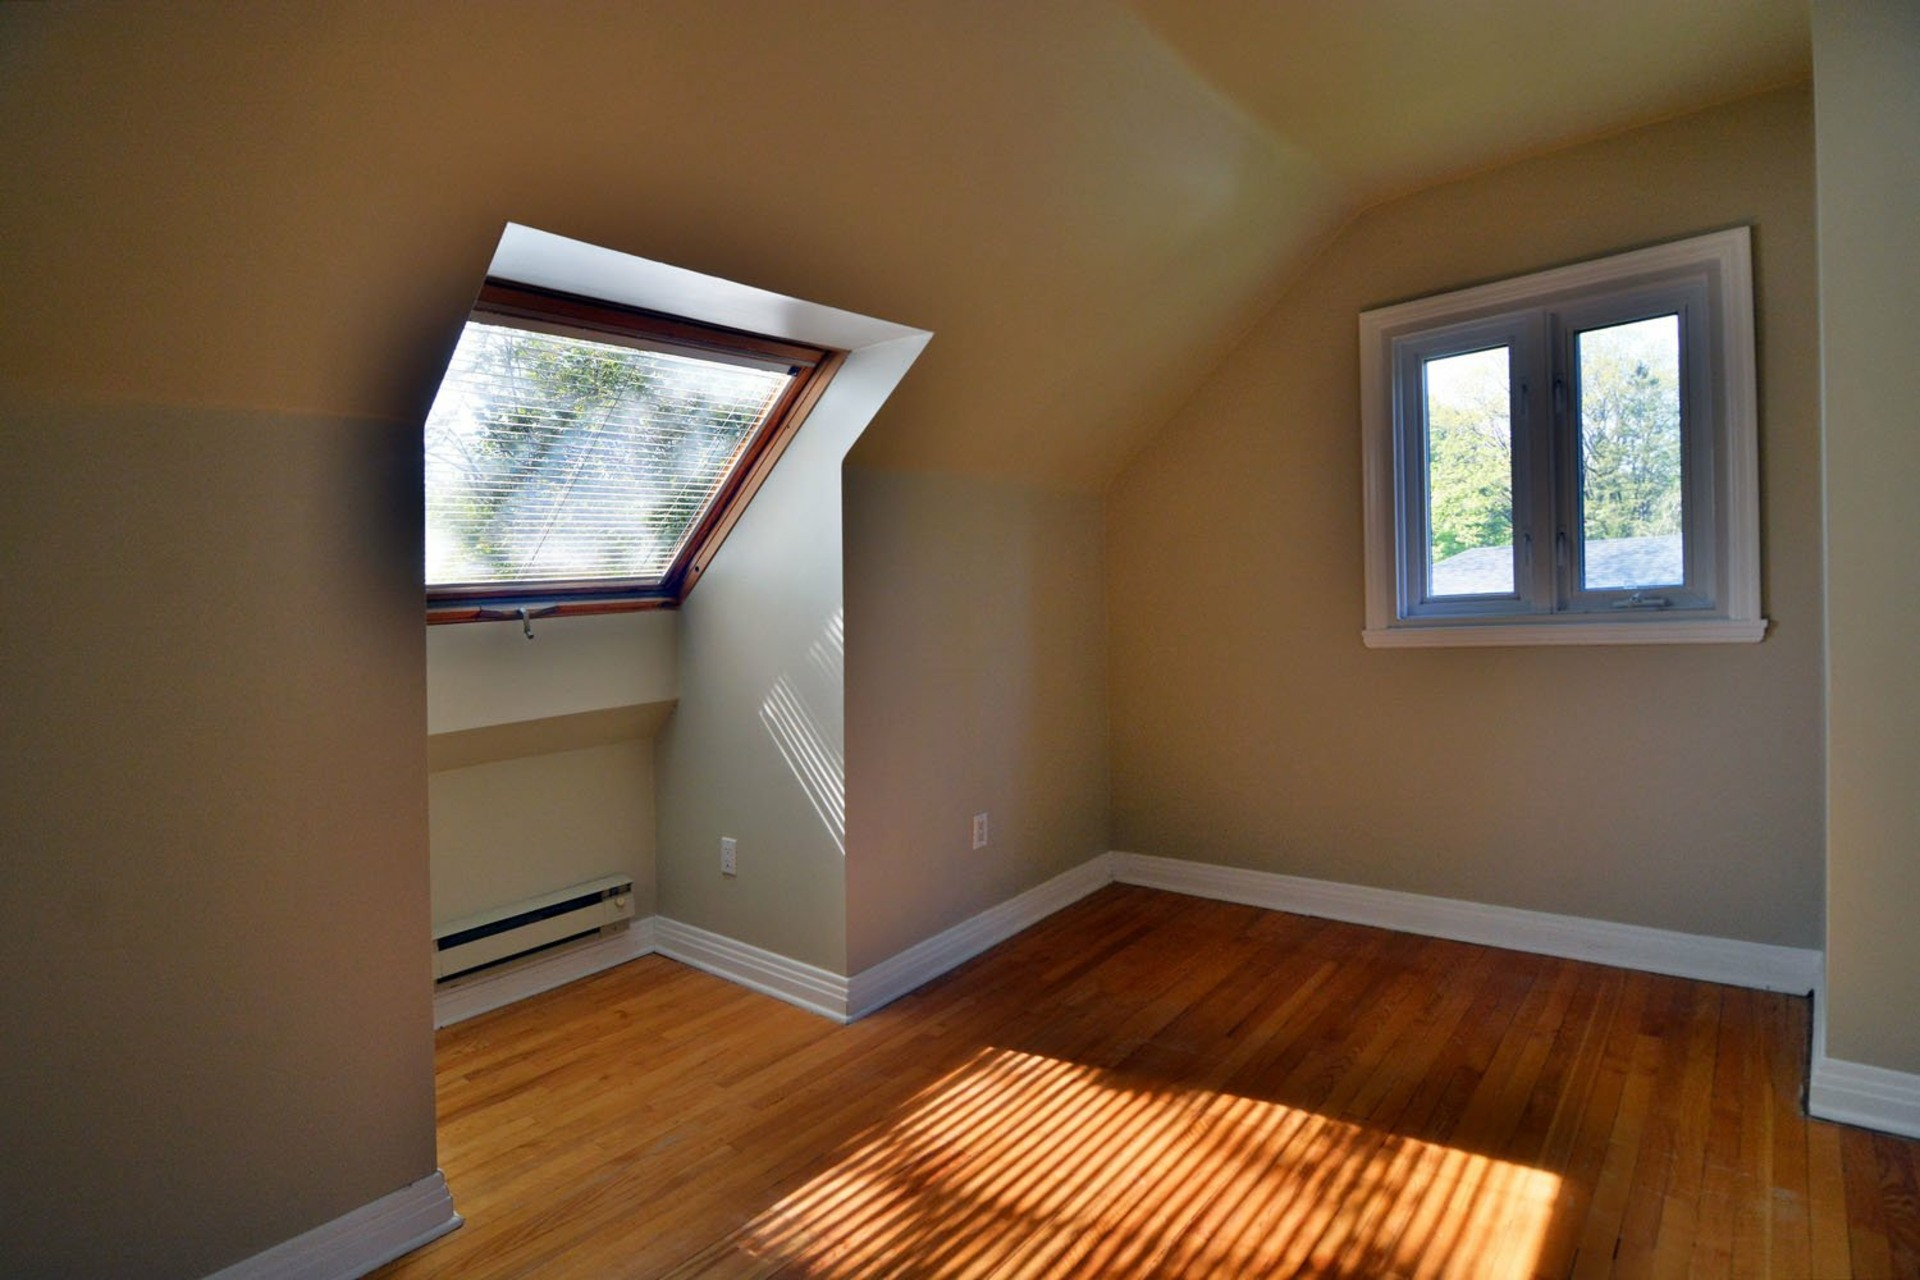 image 11 - House For rent Beaconsfield - 7 rooms